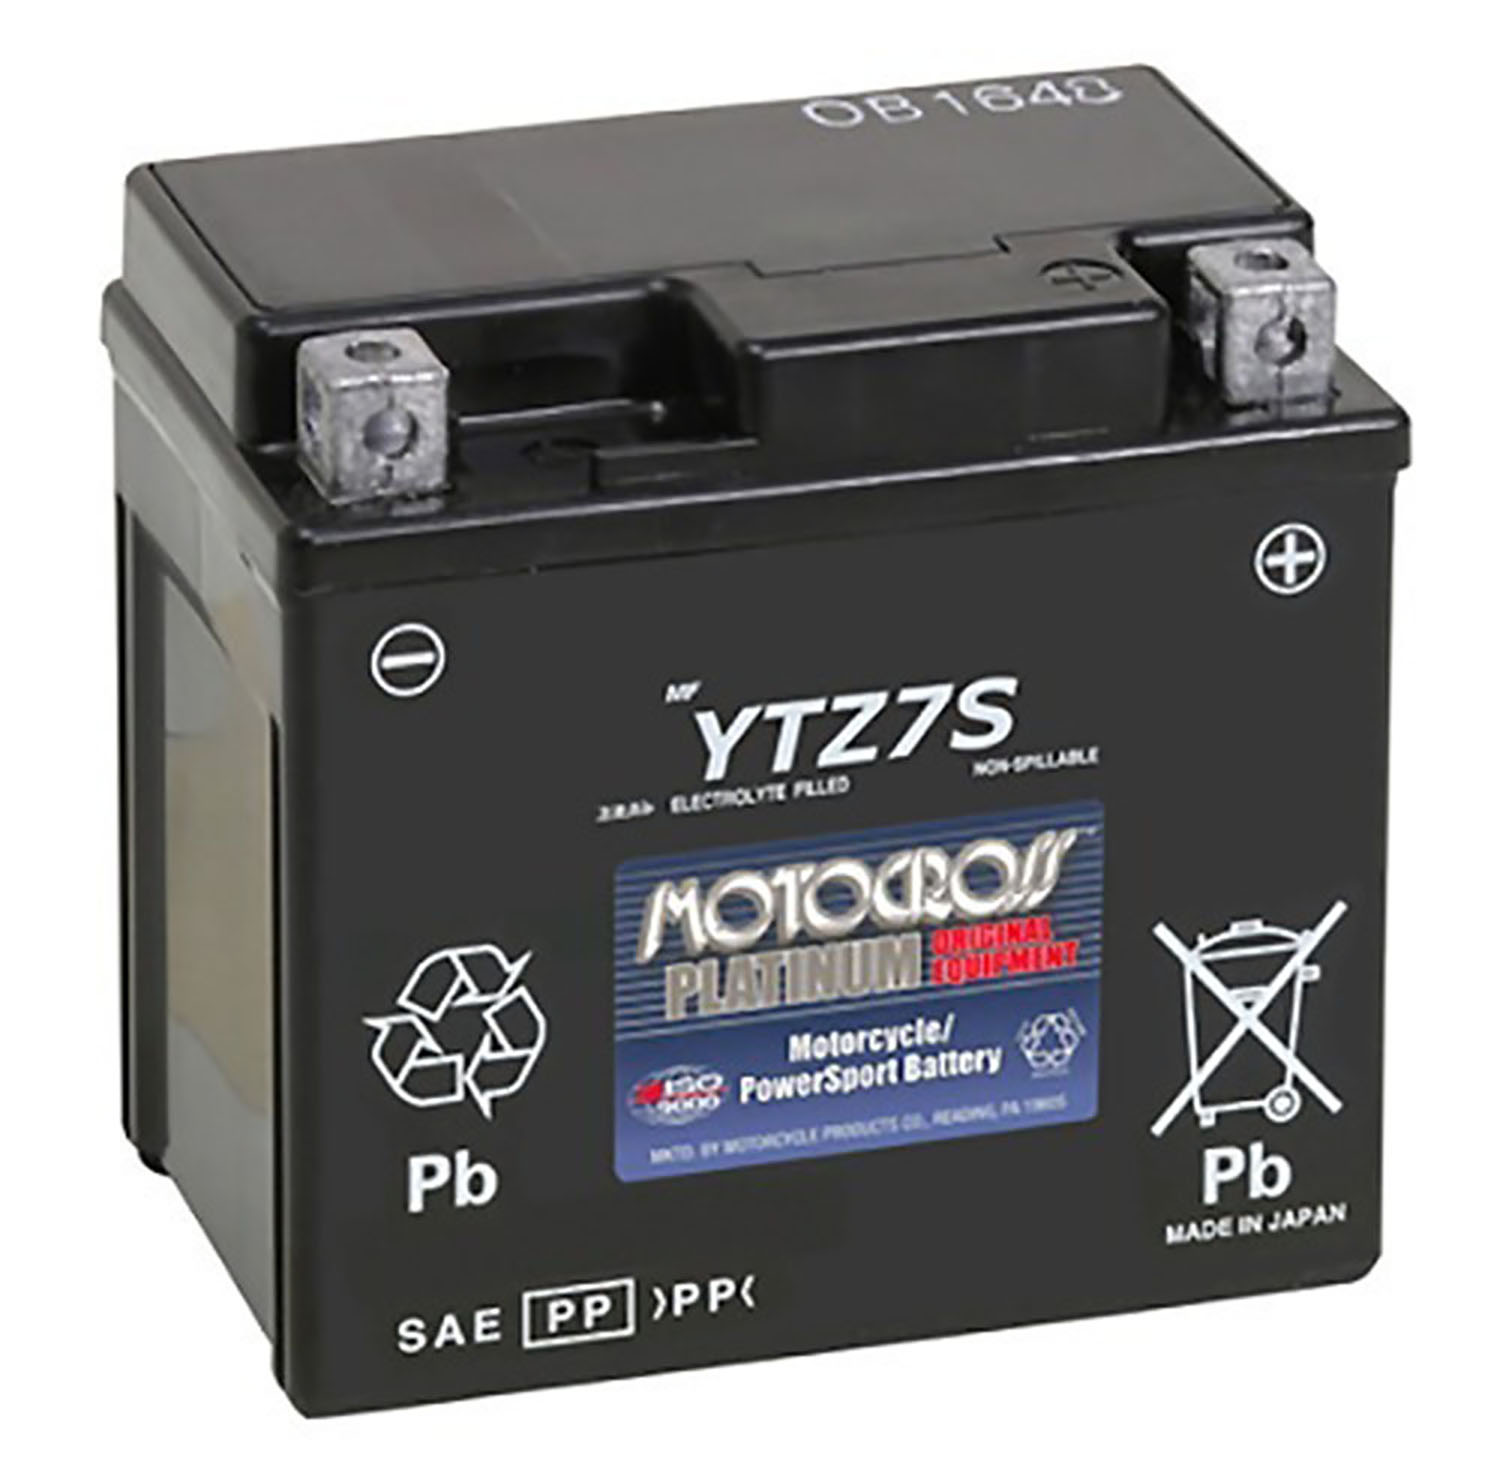 12V 6AH Battery for BMW 1000 HP4 (w/o alarm system) '13-'14